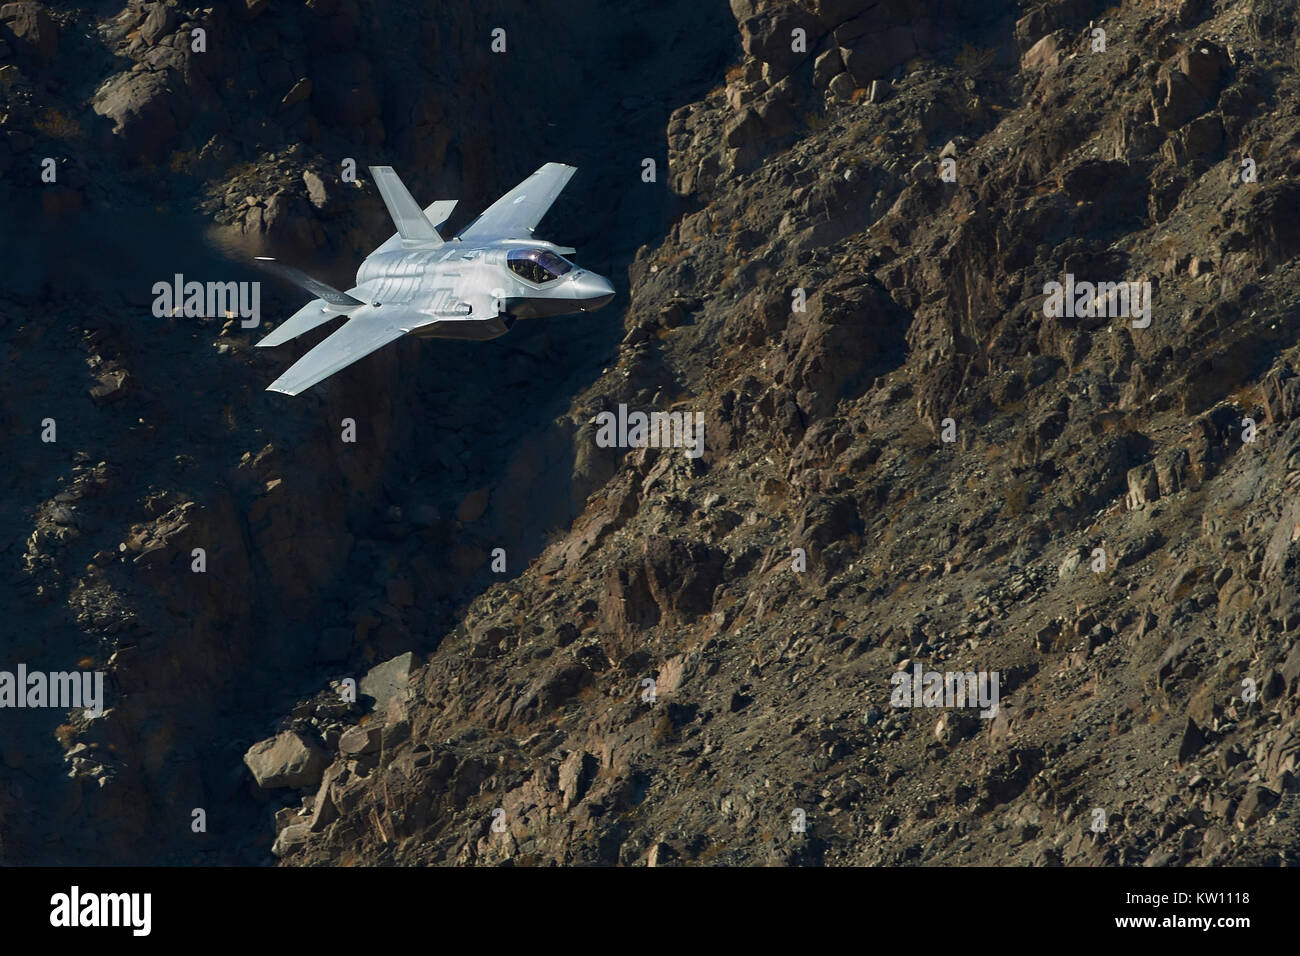 A Futuristic Lockheed Martin F-35A Lightning II Joint Strike Fighter (Stealth Fighter), Flying At Low Level Through - Stock Image